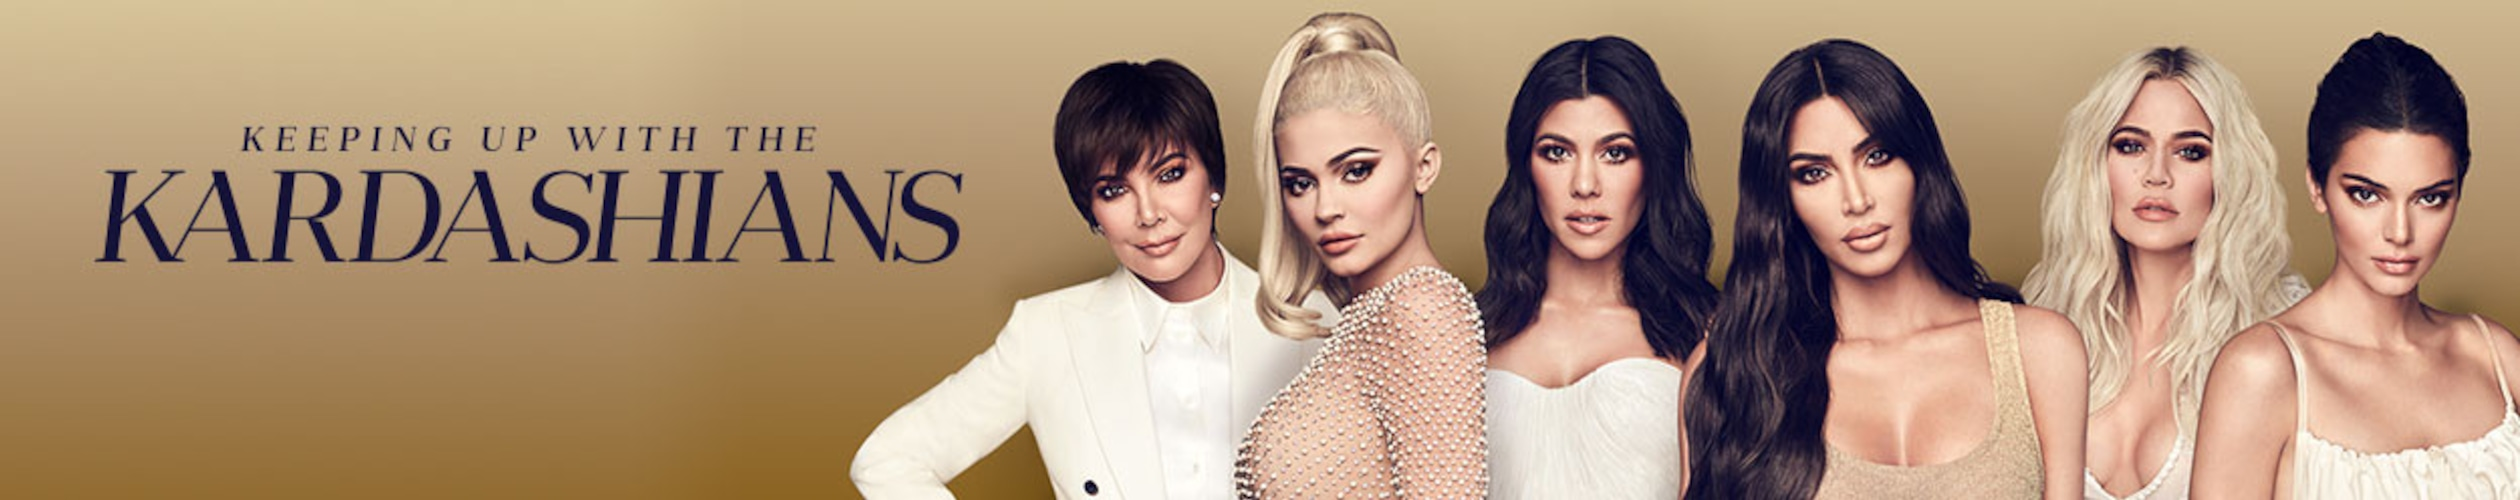 Keeping Up With the Kardashians Season 17 Show Page Assets, KUWTK